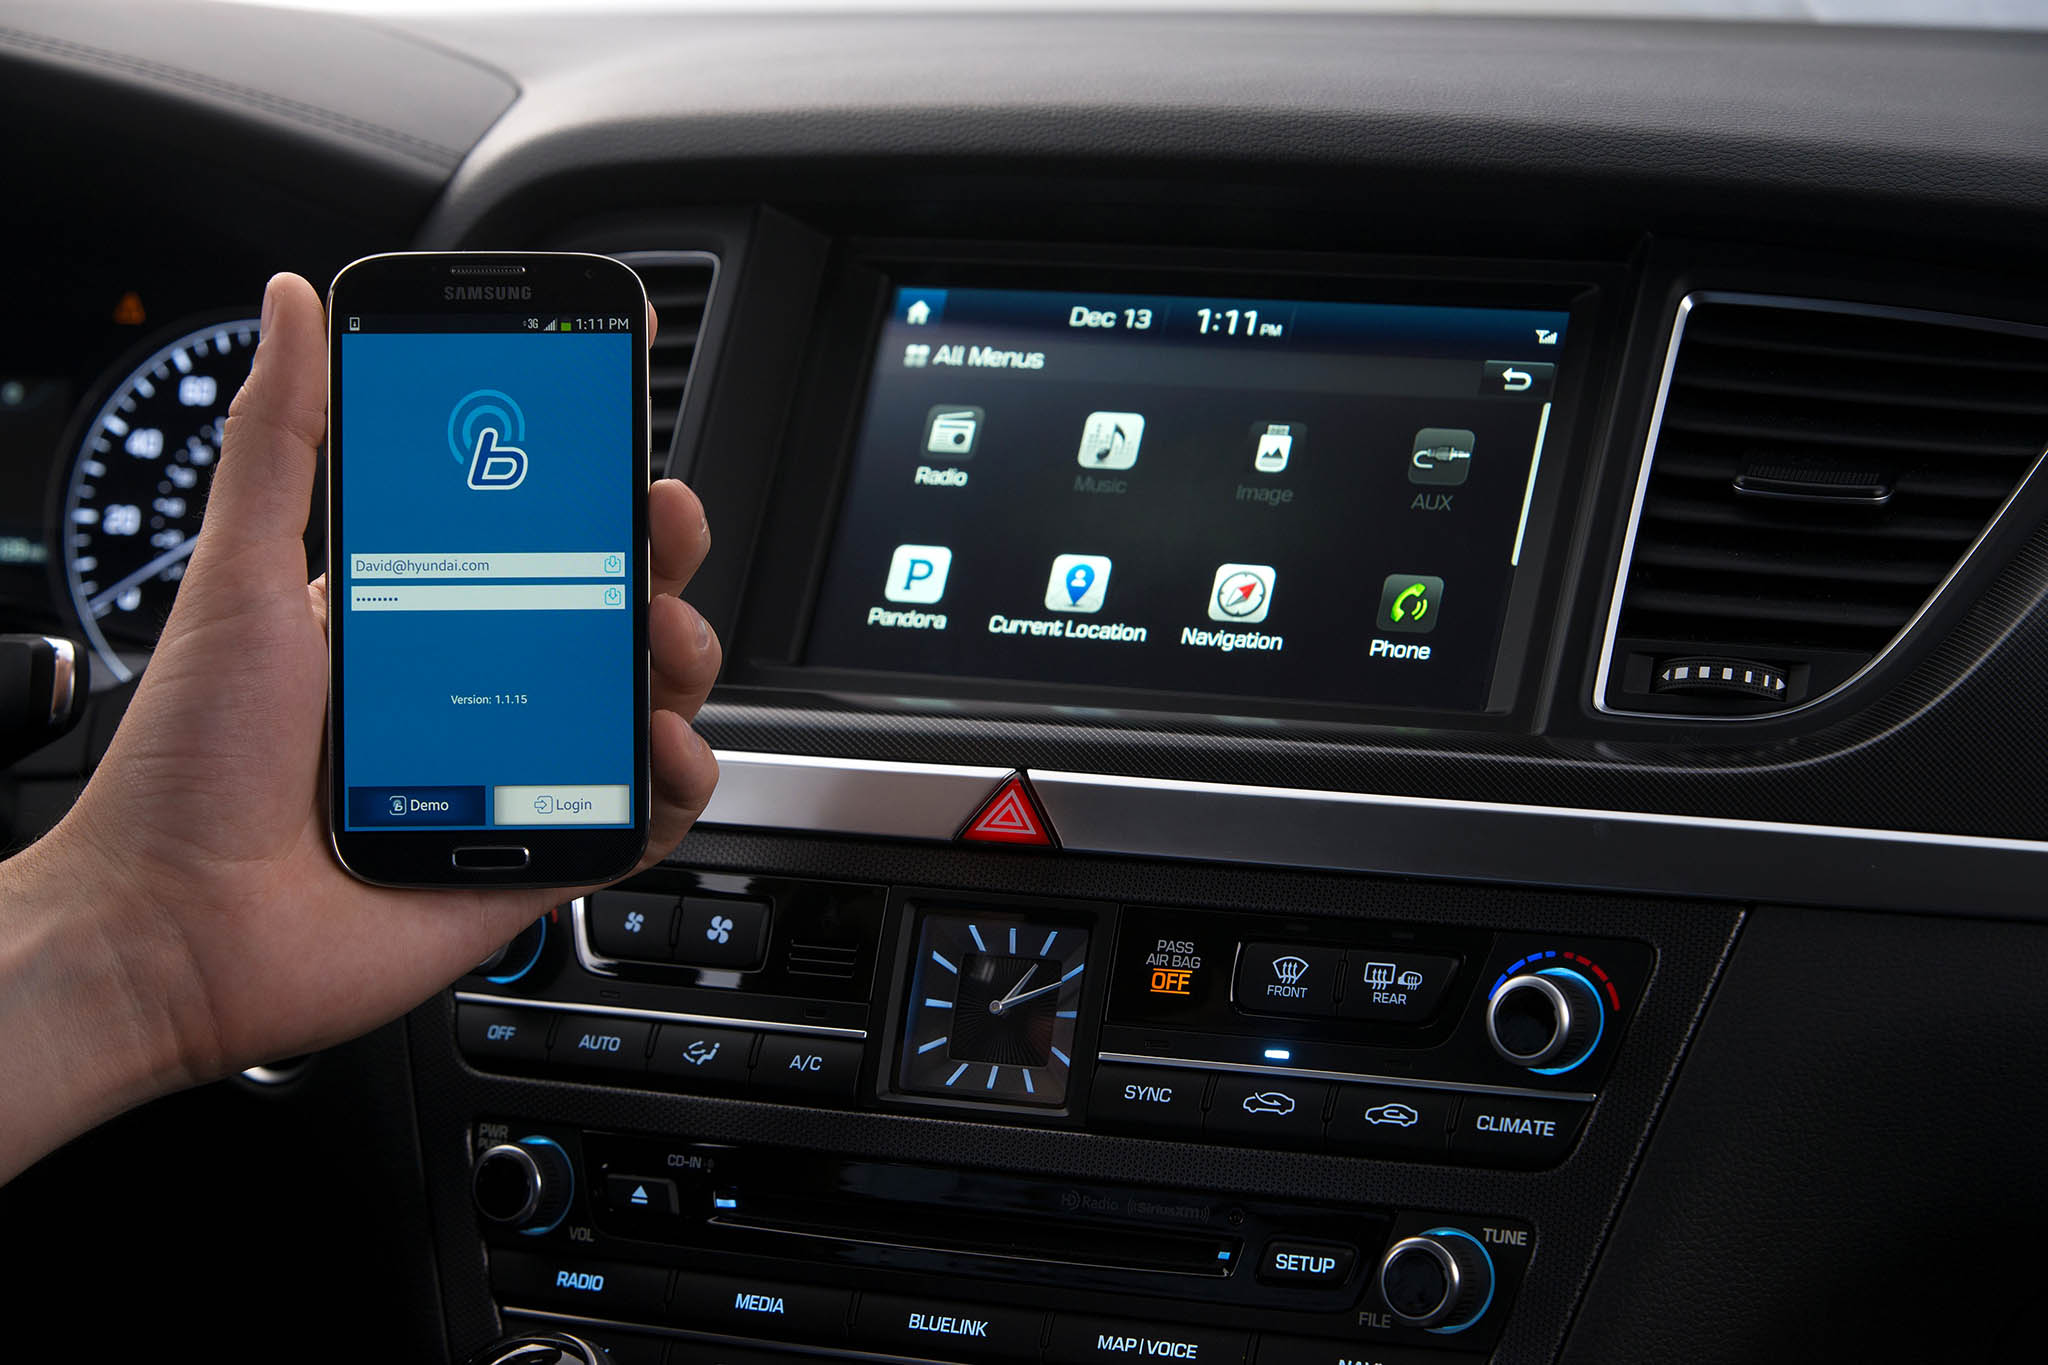 American Road Safety Foundation Rejected Infotaiment Systems On Car